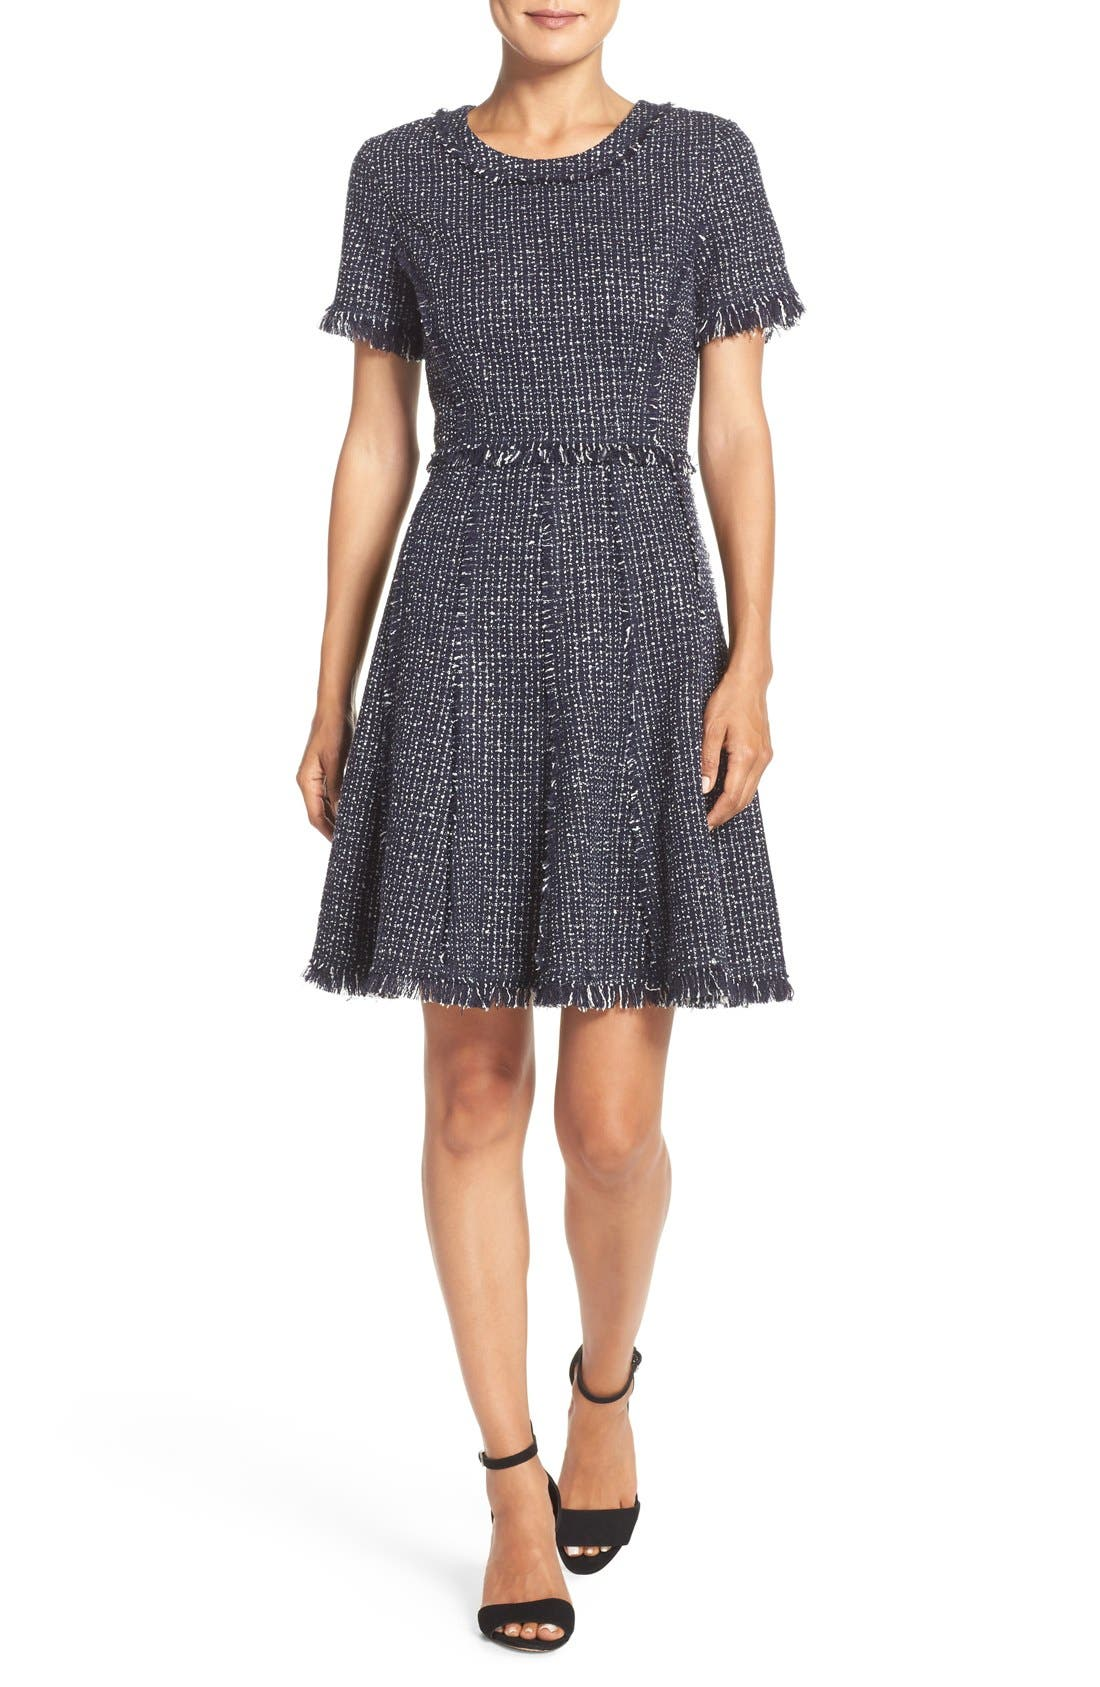 ELIZA J Tweed Fit & Flare Dress, Main, color, 410